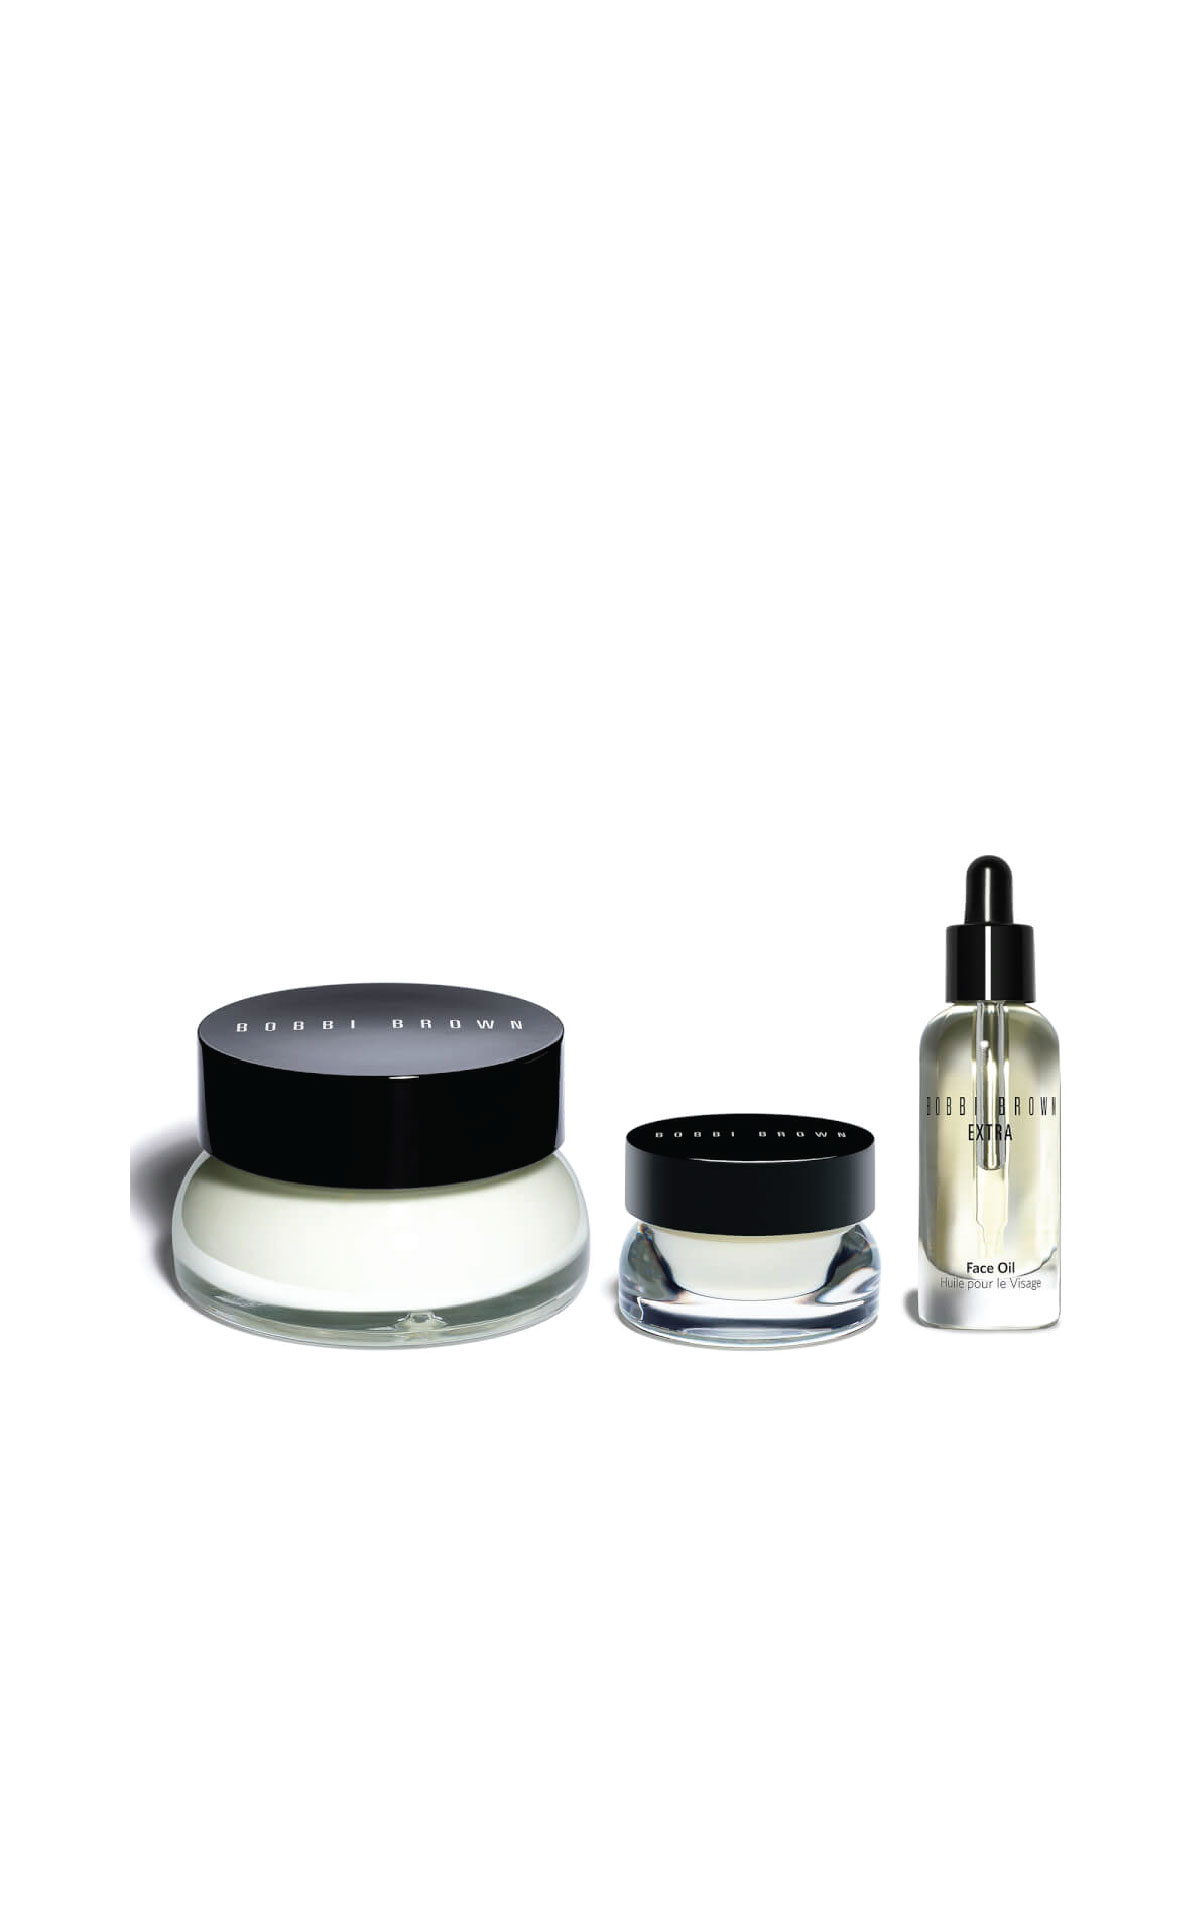 The Cosmetics Company Store Bobbi brown repair and glow set from Bicester Village